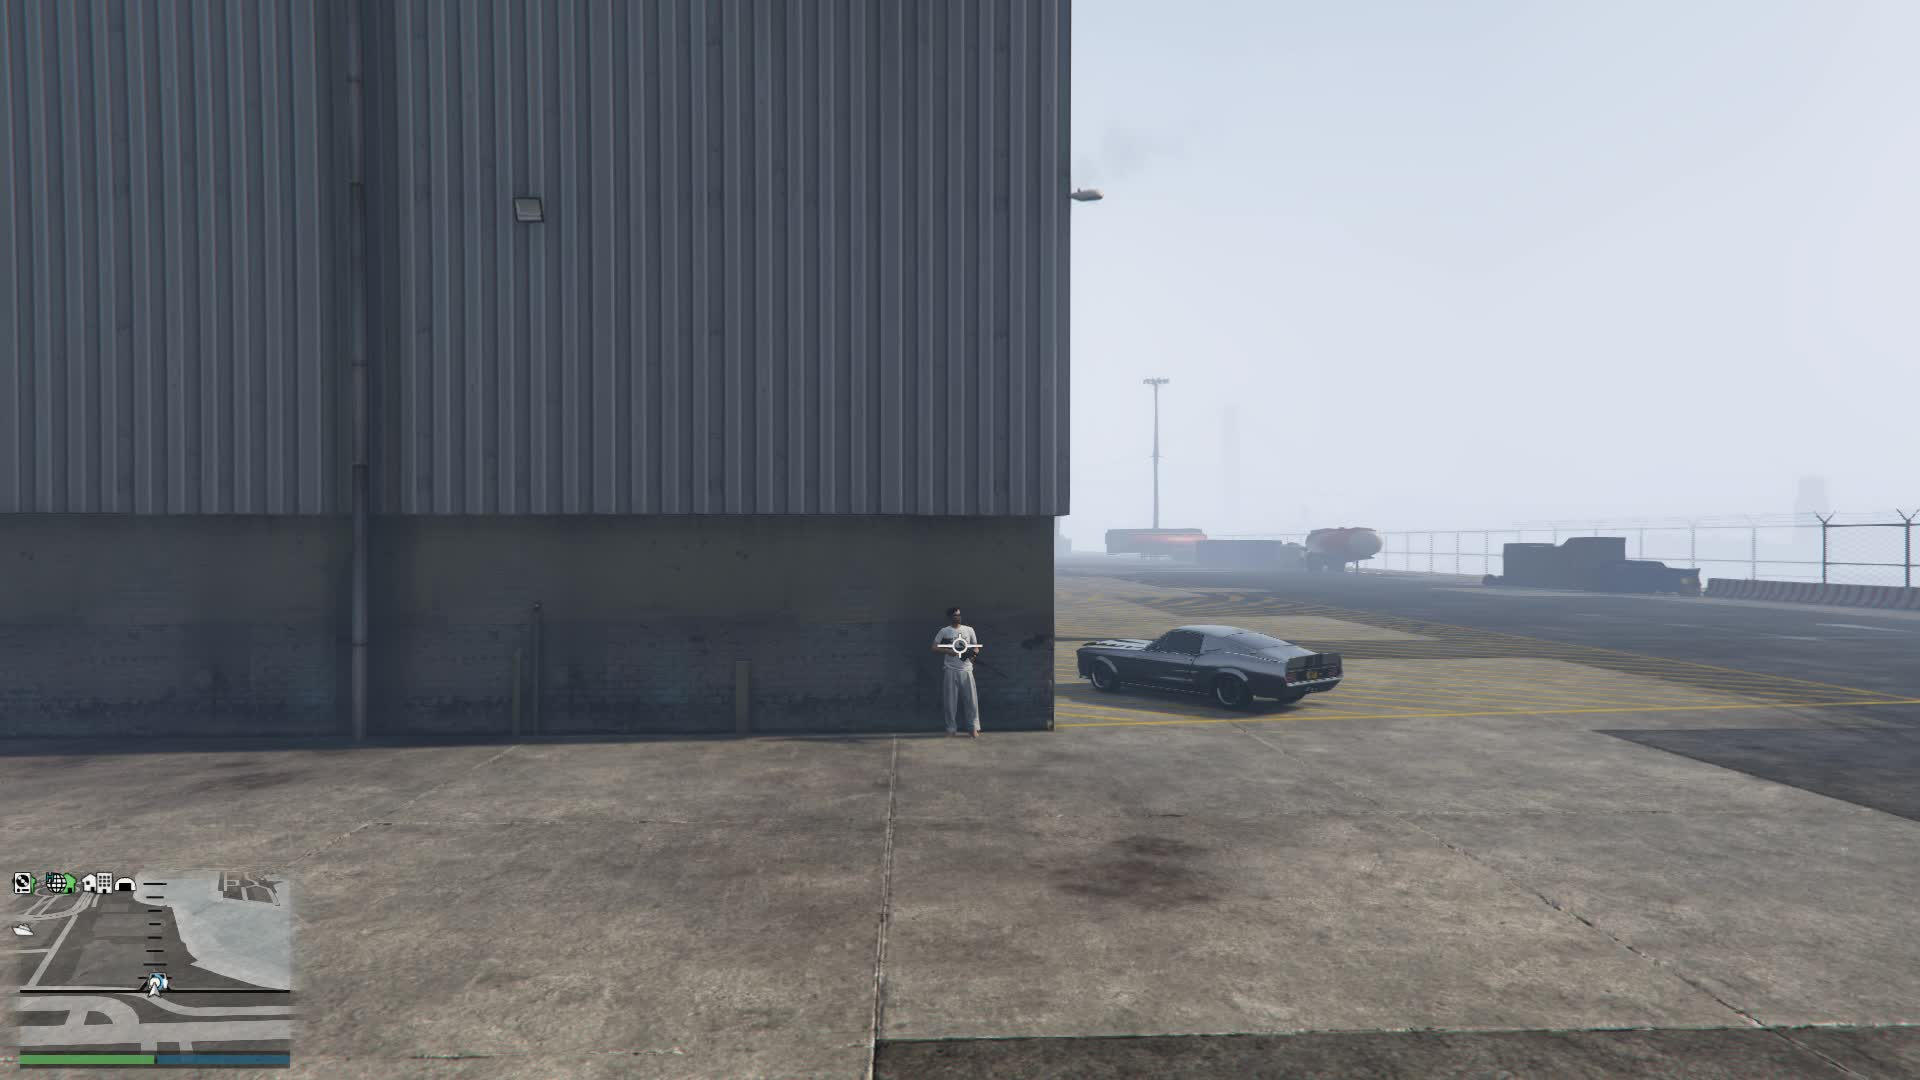 grandtheftautov, Death only by Fire? GIFs